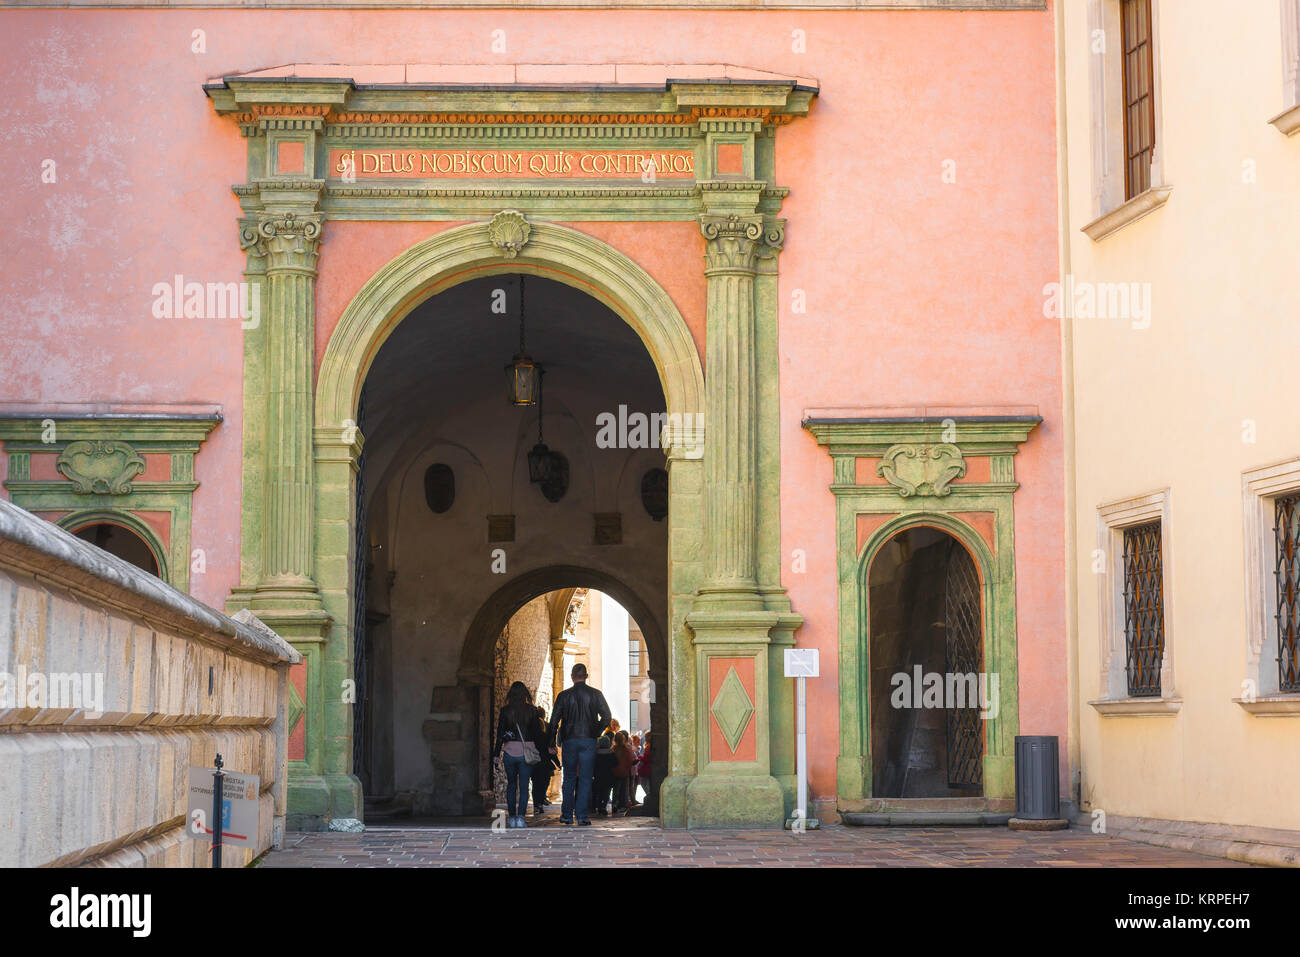 Krakow Castle, tourists pass through the vaulted passageway linking Krakow Cathedral to the Royal Castle courtyard - Stock Image